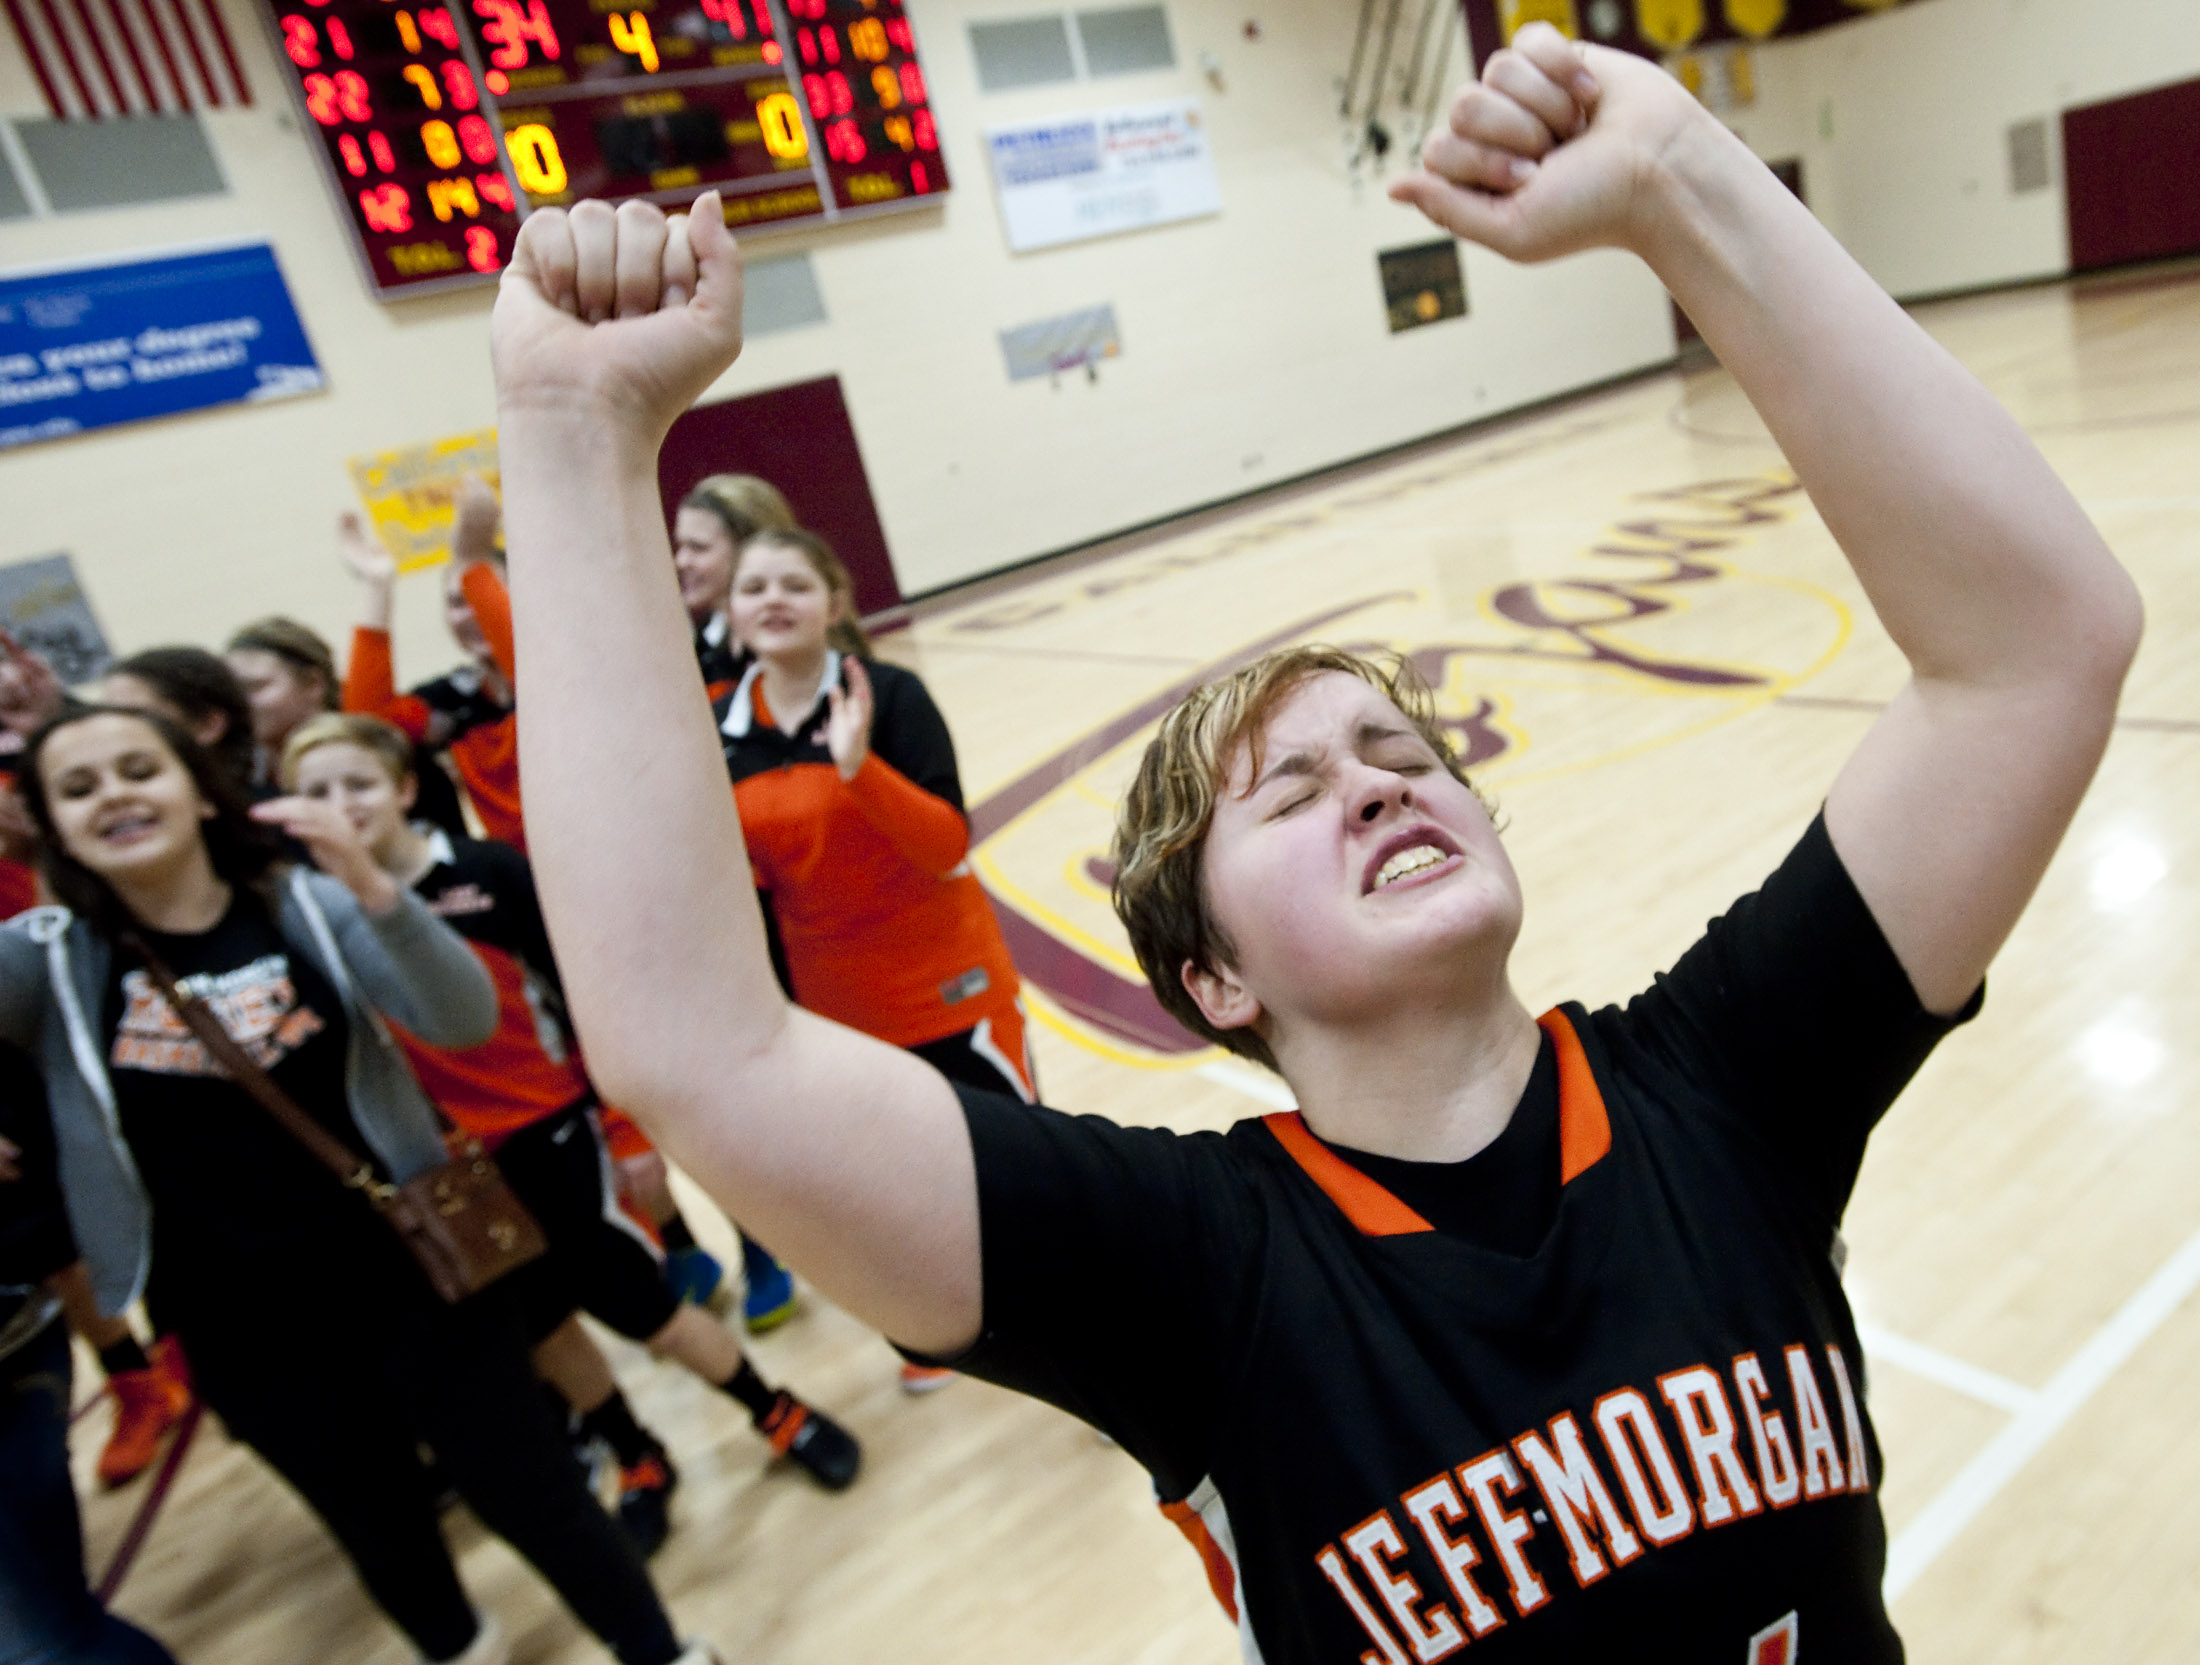 Jefferson Morgan's Kayla Yorko, center, reacts with teammates after beating California during a girls basketball game on Thursday, Jan. 28, 2016 at California Area High School. Jefferson Morgan won 41-34.